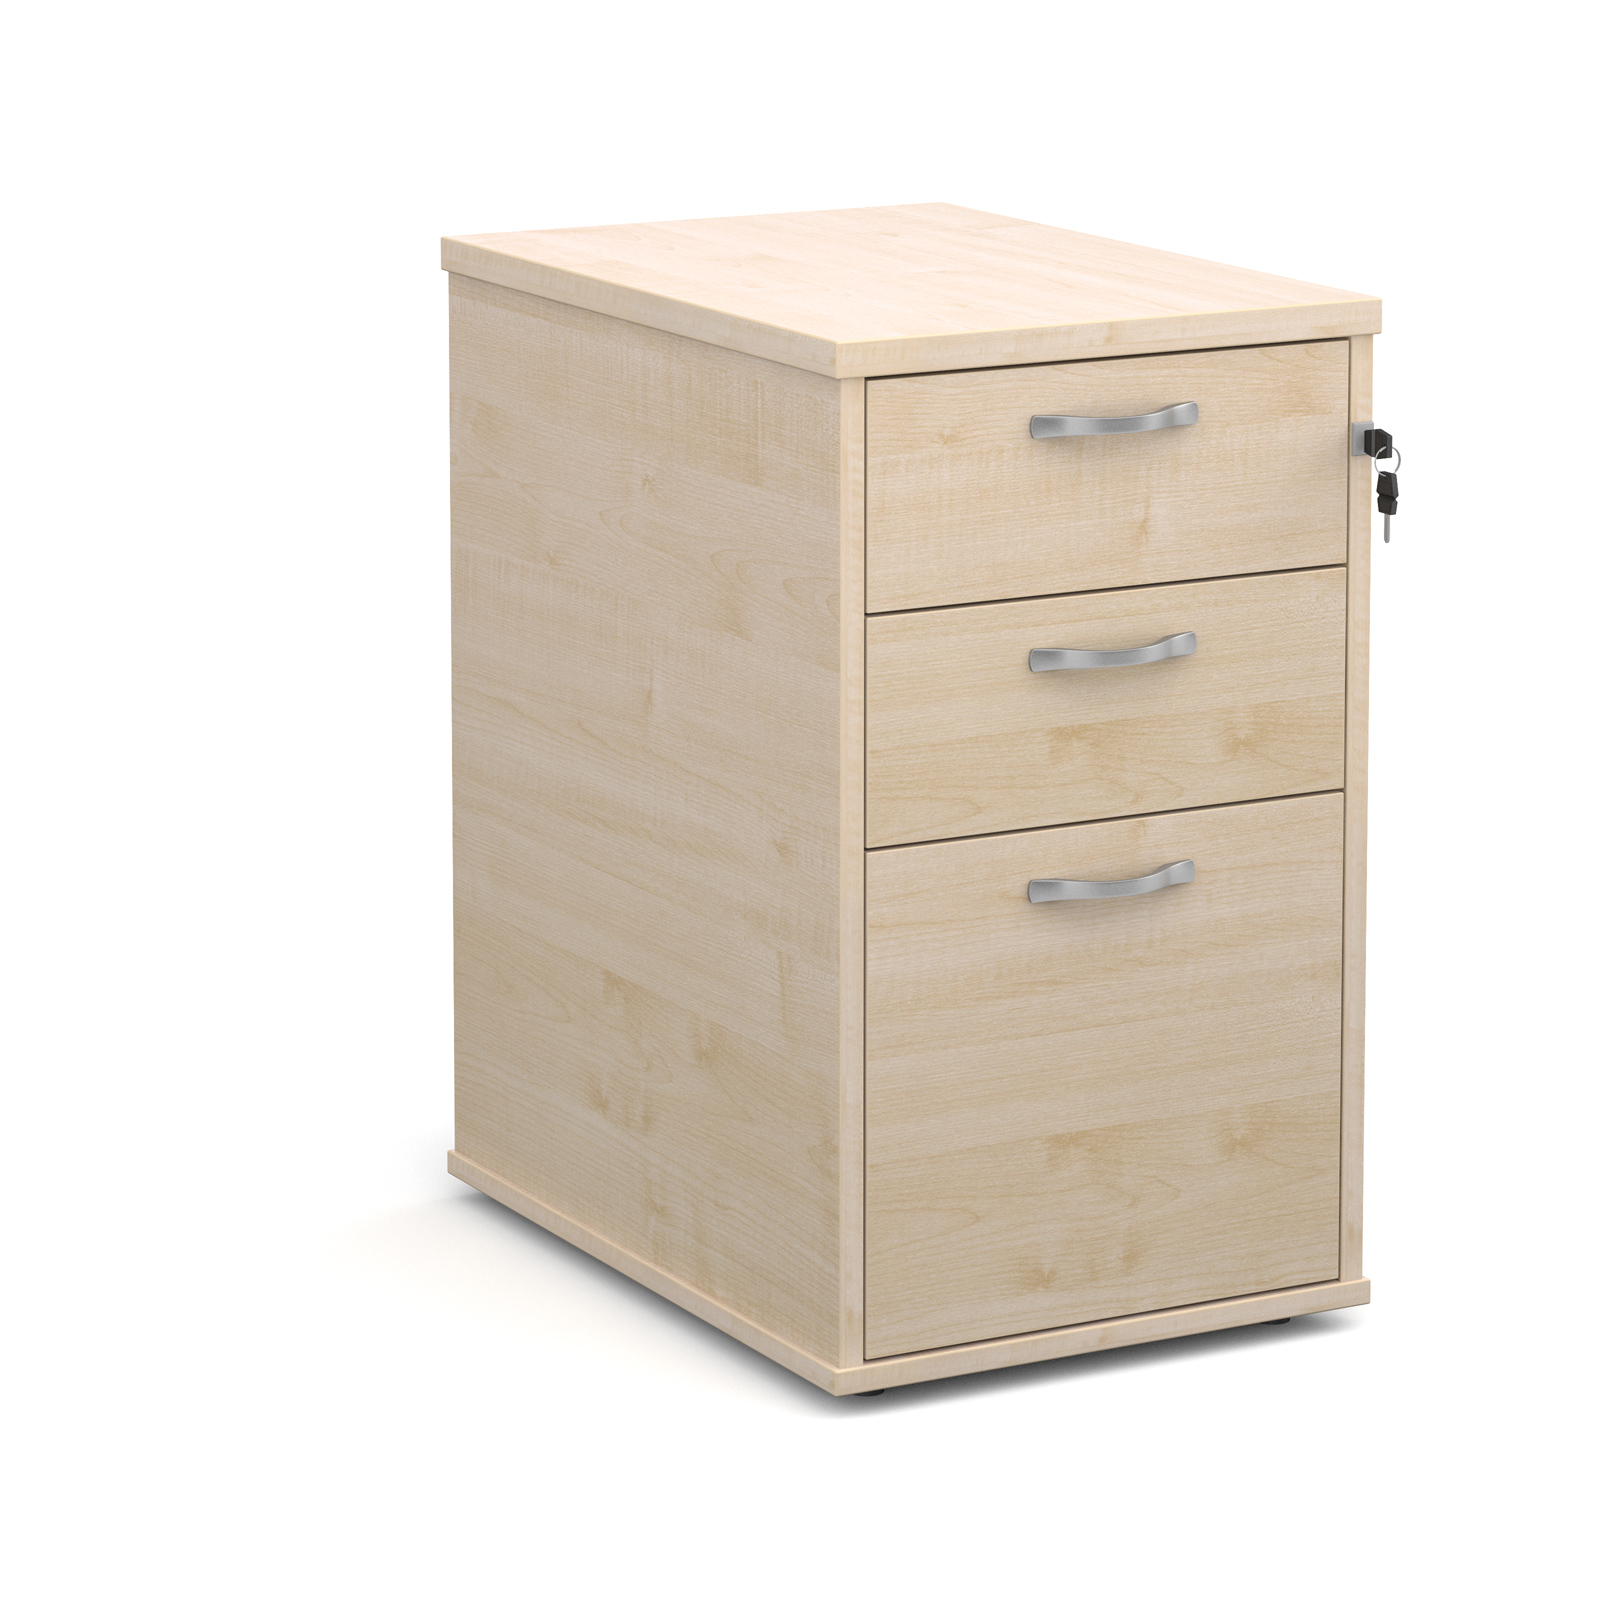 600mm Desk High 3 Drawer Pedestal in maple